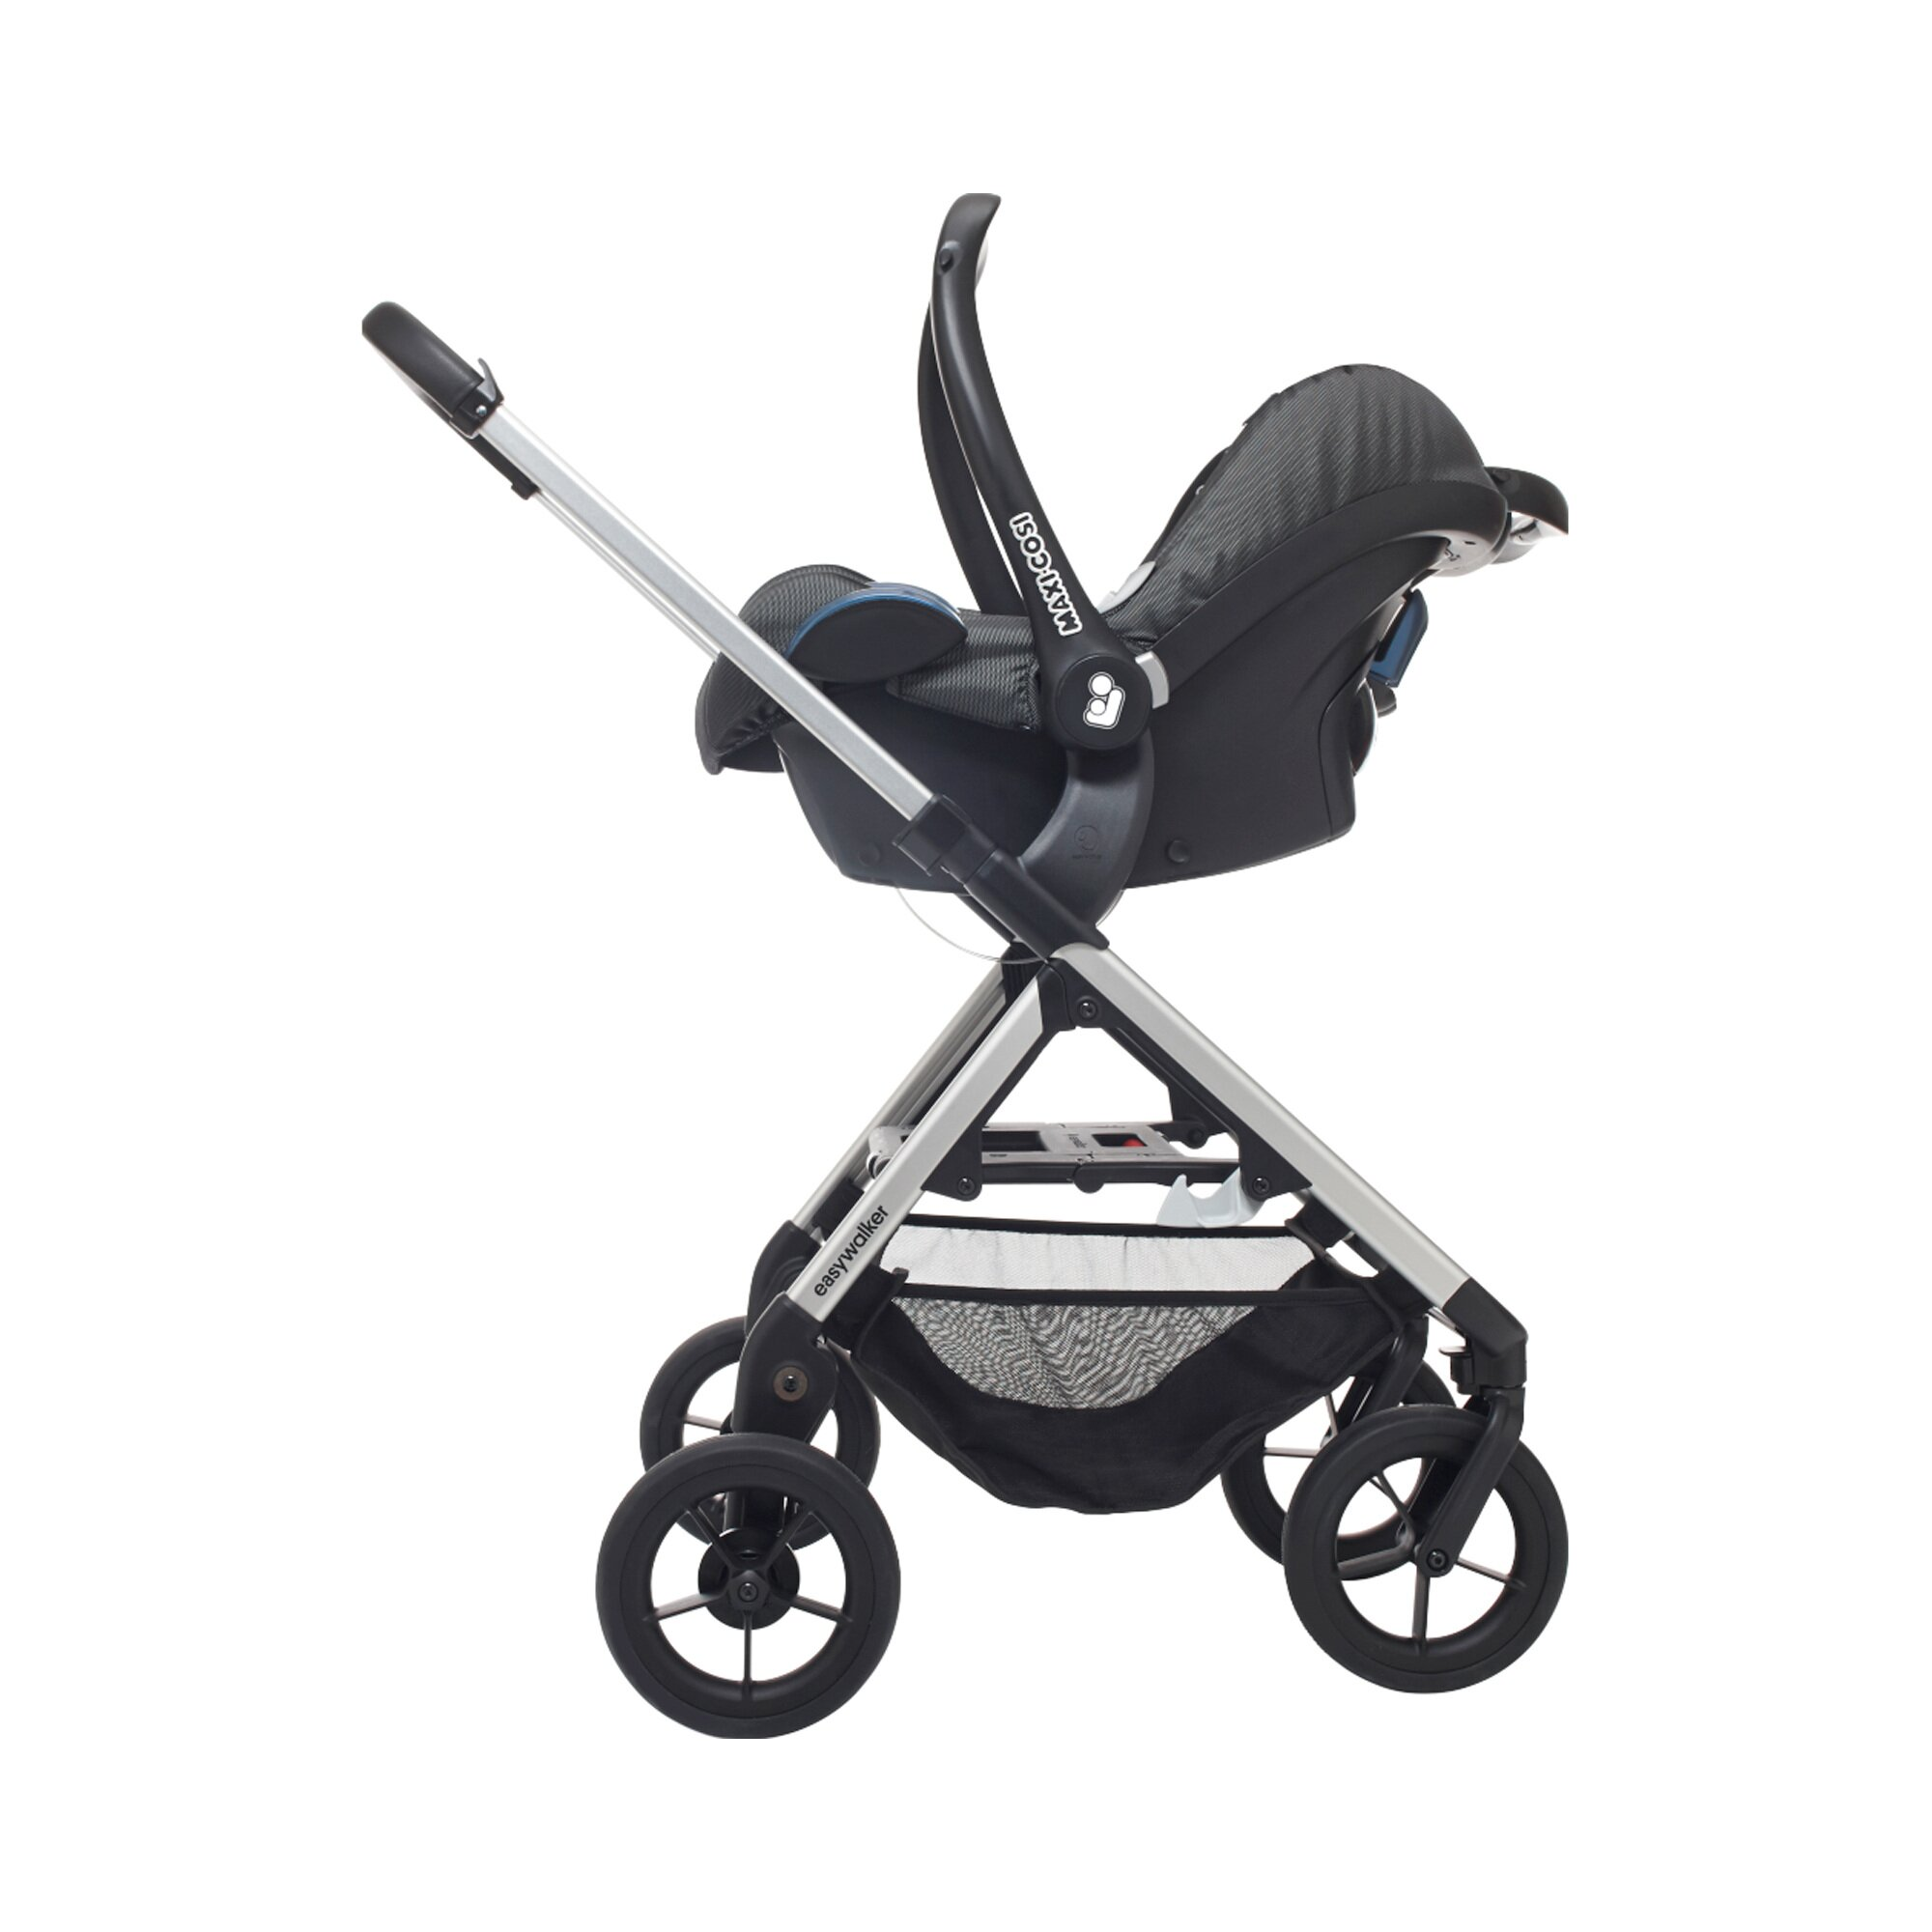 easywalker-maxi-cosi-cybex-kiddy-besafe-nuna-adapter-fur-mosey-mosey-plus-und-mini